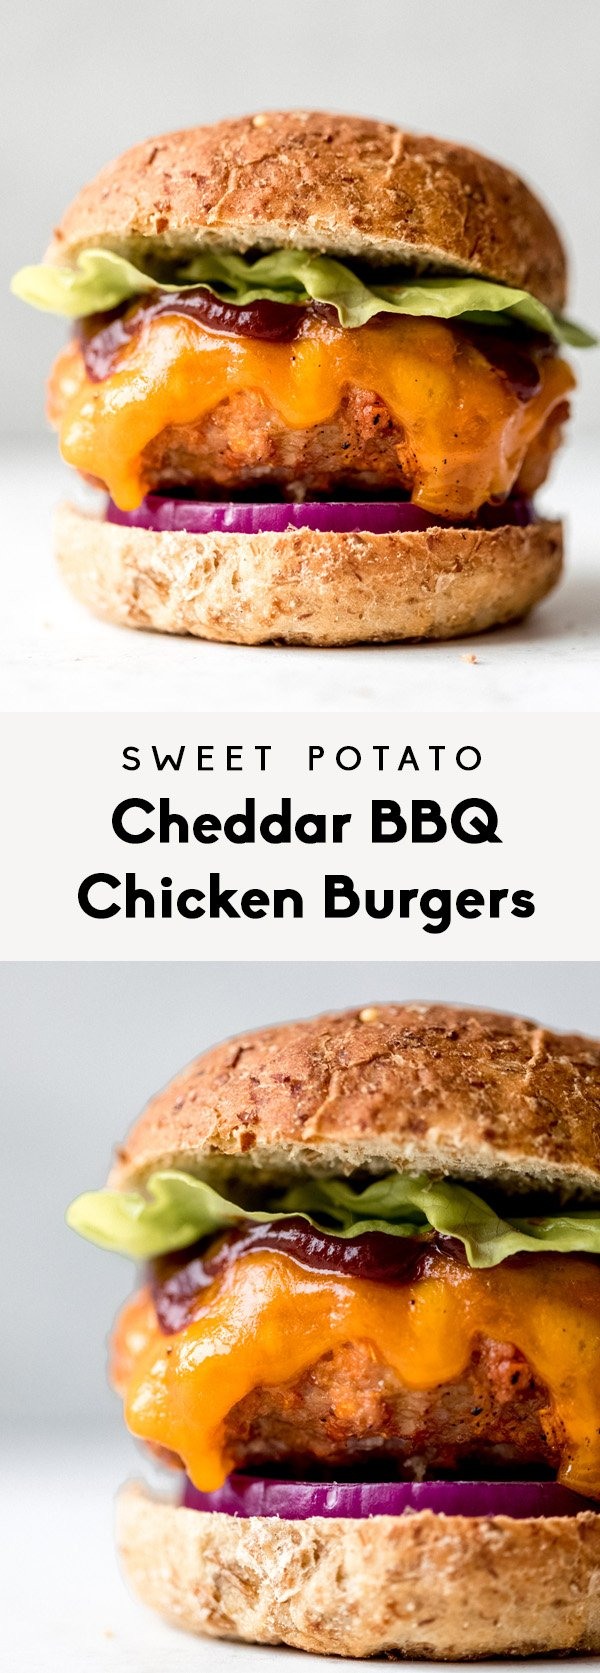 collage of sweet potato cheddar bbq chicken burgers with text overlay